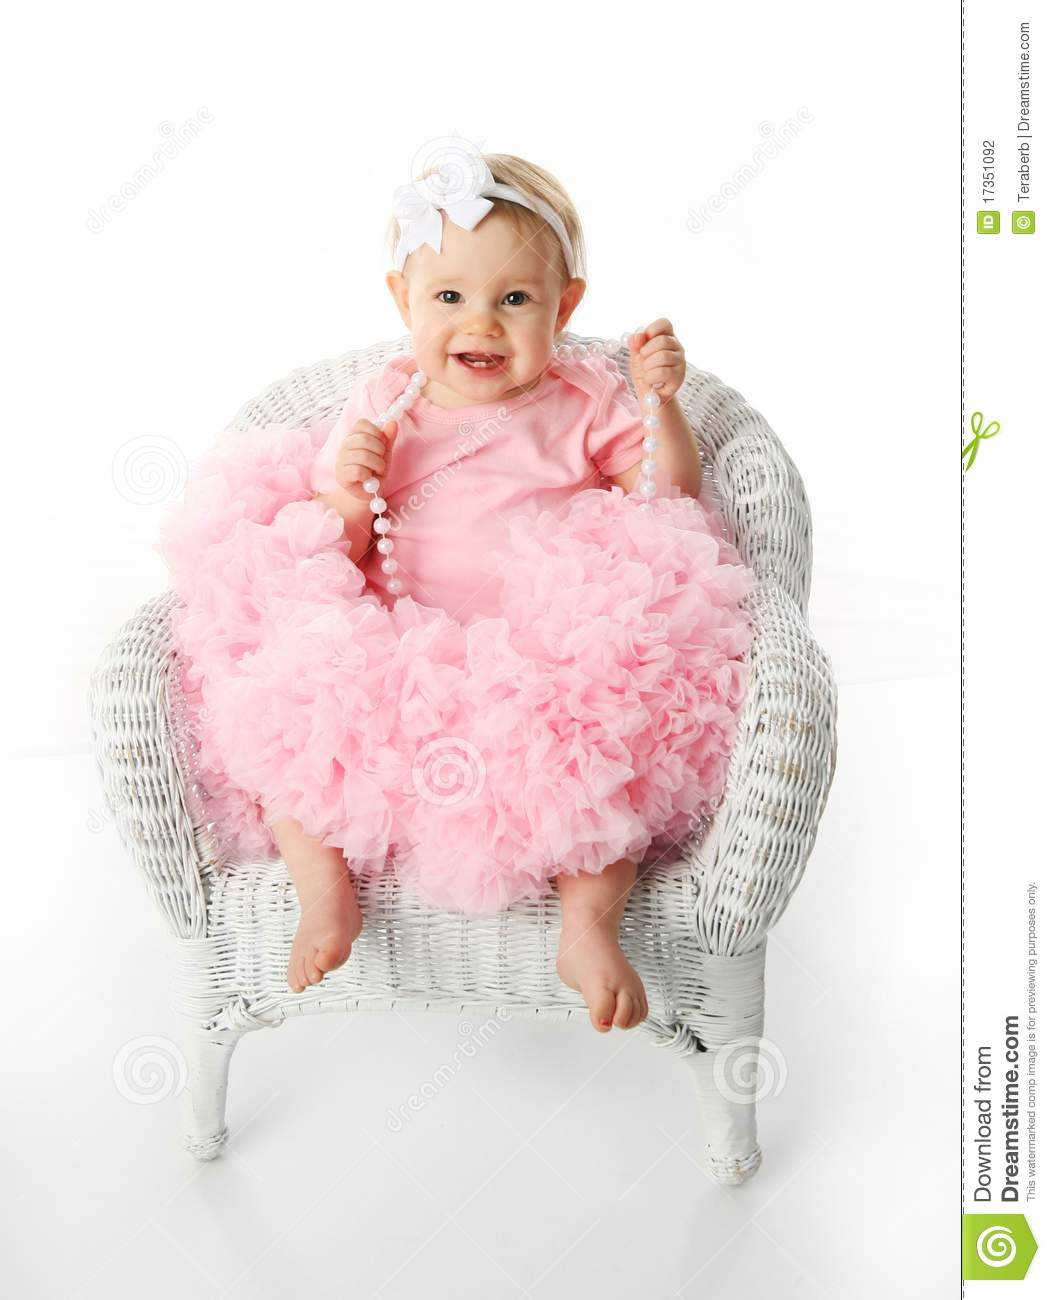 Baby Girls. See more clothing categories. Retailer. Fun 2B Kids, LLC. See more retailers. Price $ to $ Go. Please enter a minimum and maximum price. $20 - $ See more prices. Baby Girl Tutu Sets. invalid category id. Baby Girl Tutu Sets. Showing 1 of 1 .